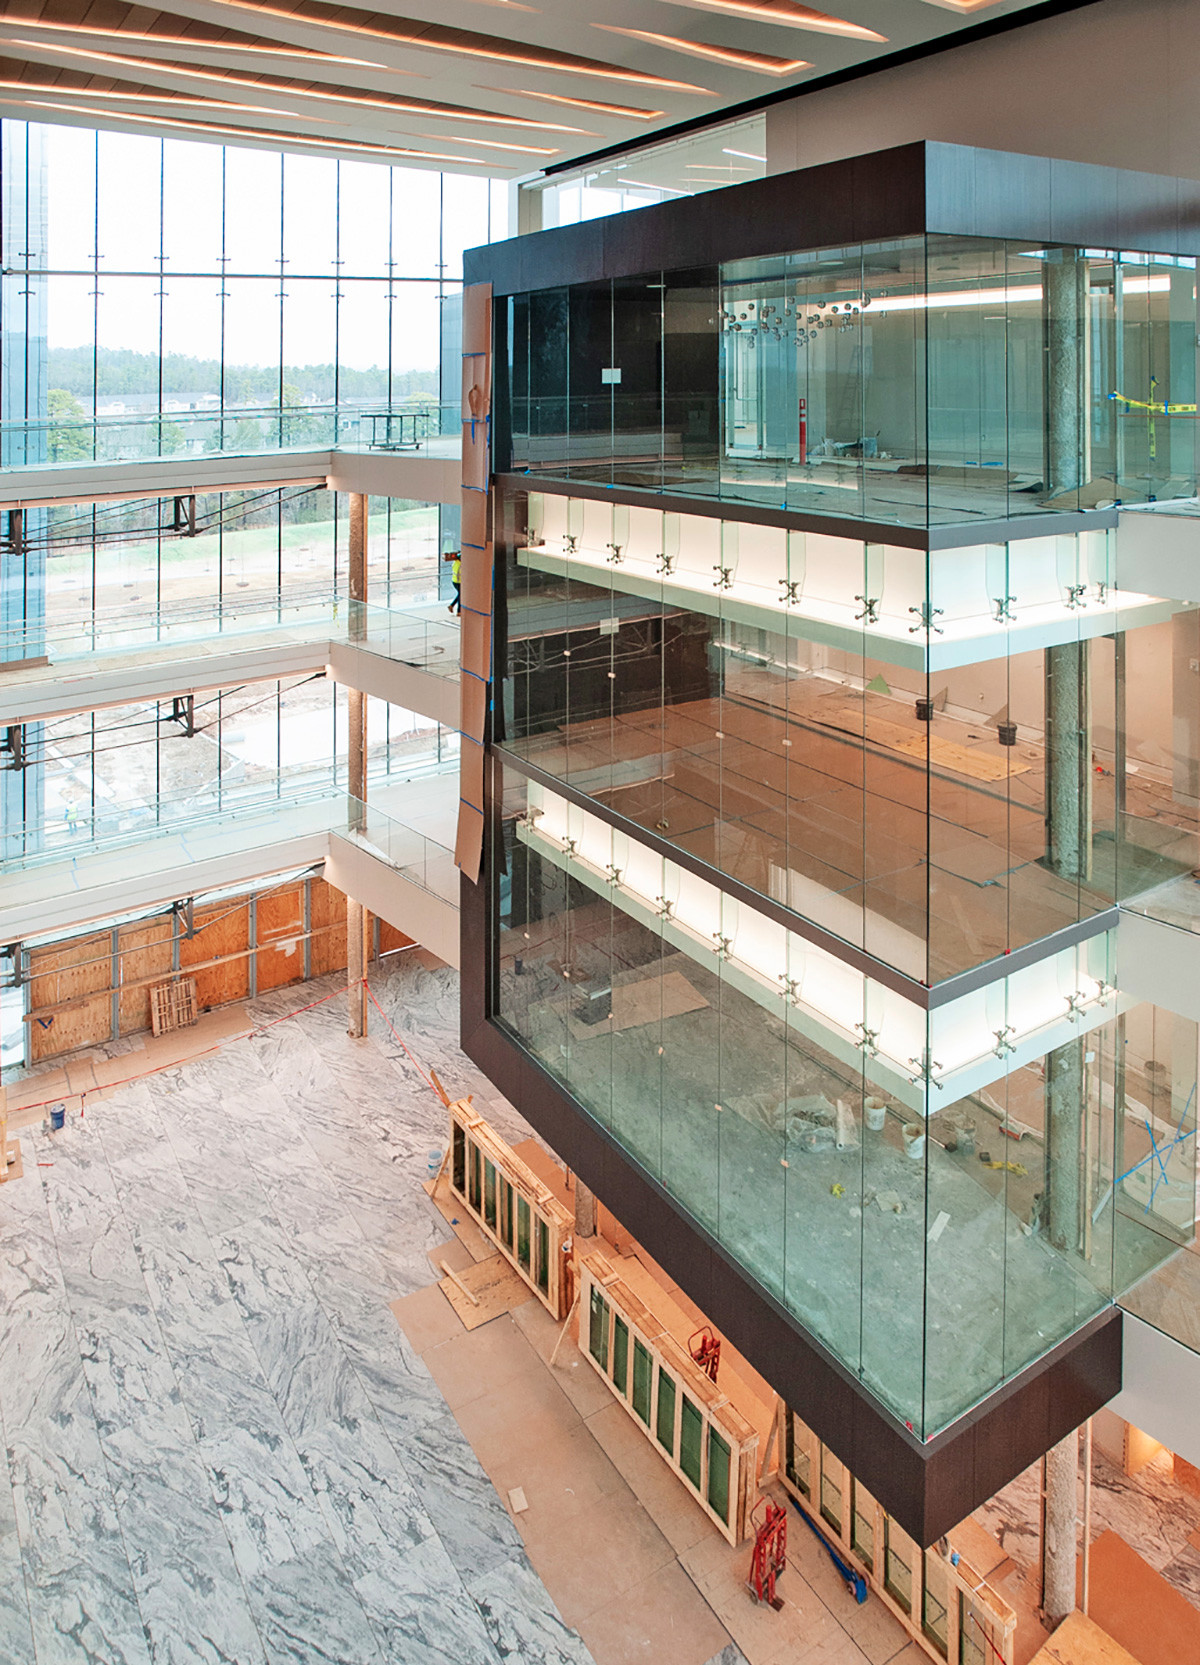 The new Bank OZK headquarters will feature nine conference rooms overlooking its expansive atrium and space awash in natural lighting.